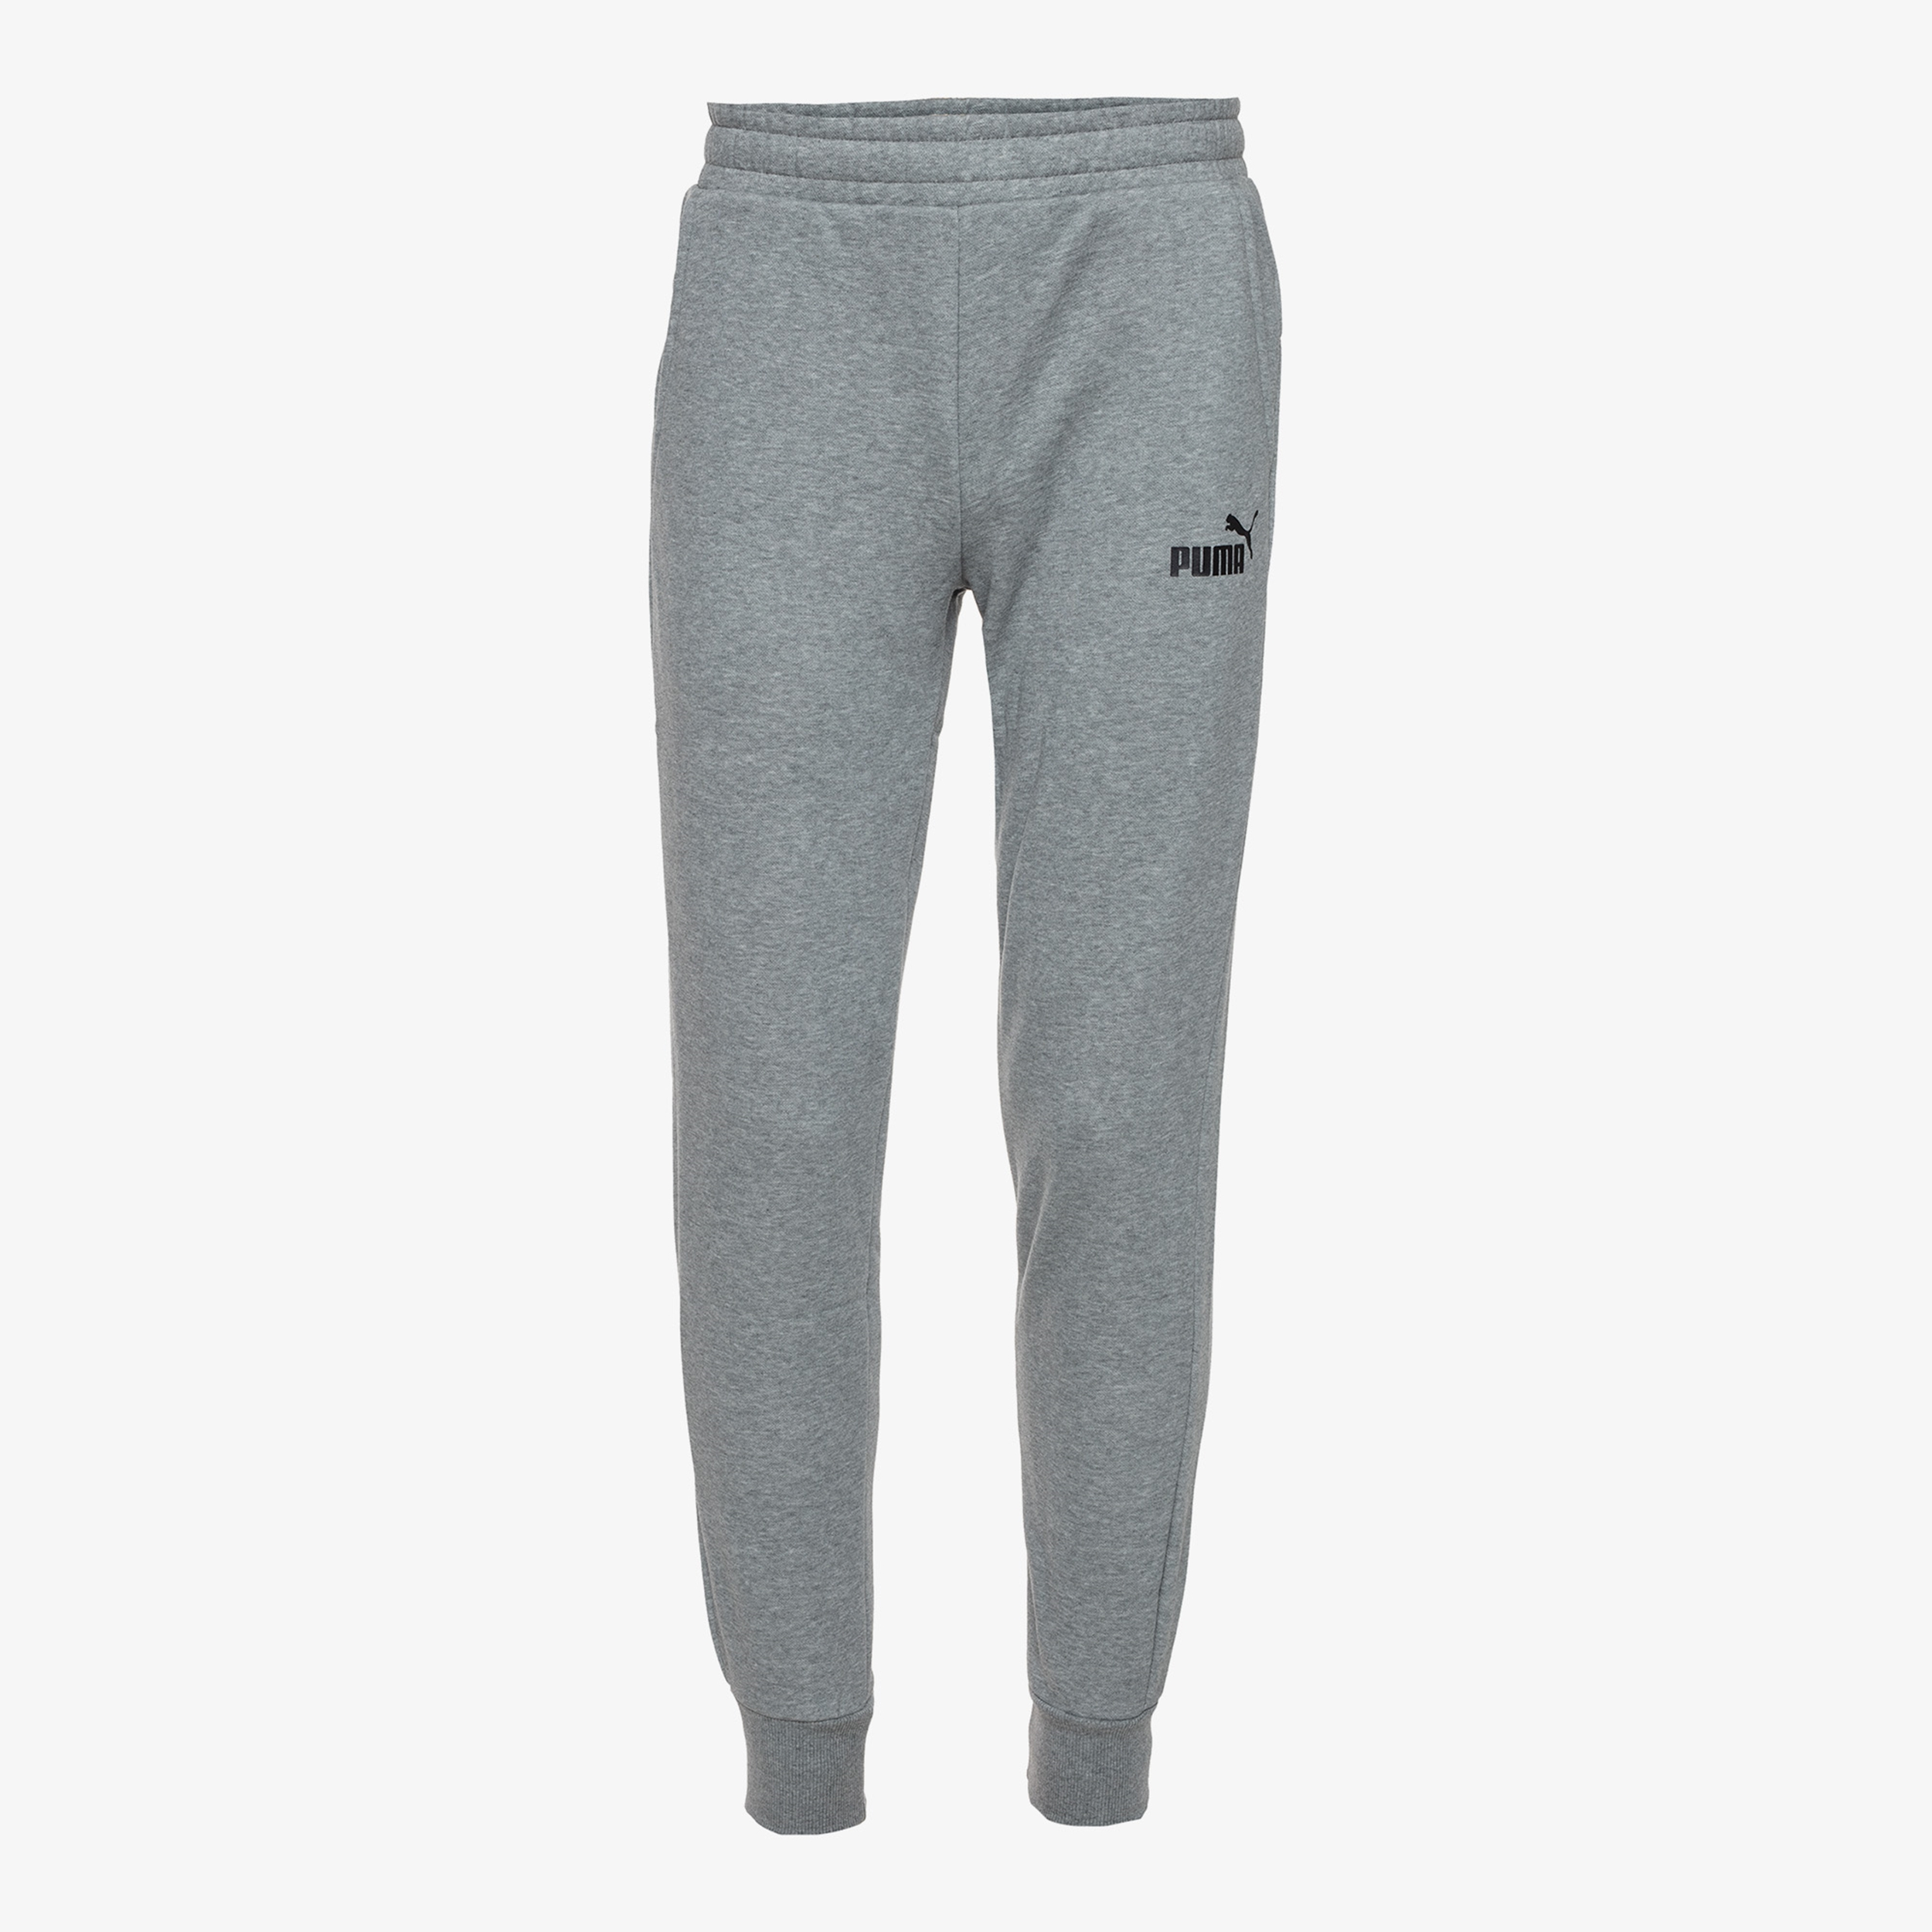 Puma Essential NO1 heren joggingbroek | Scapino.nl